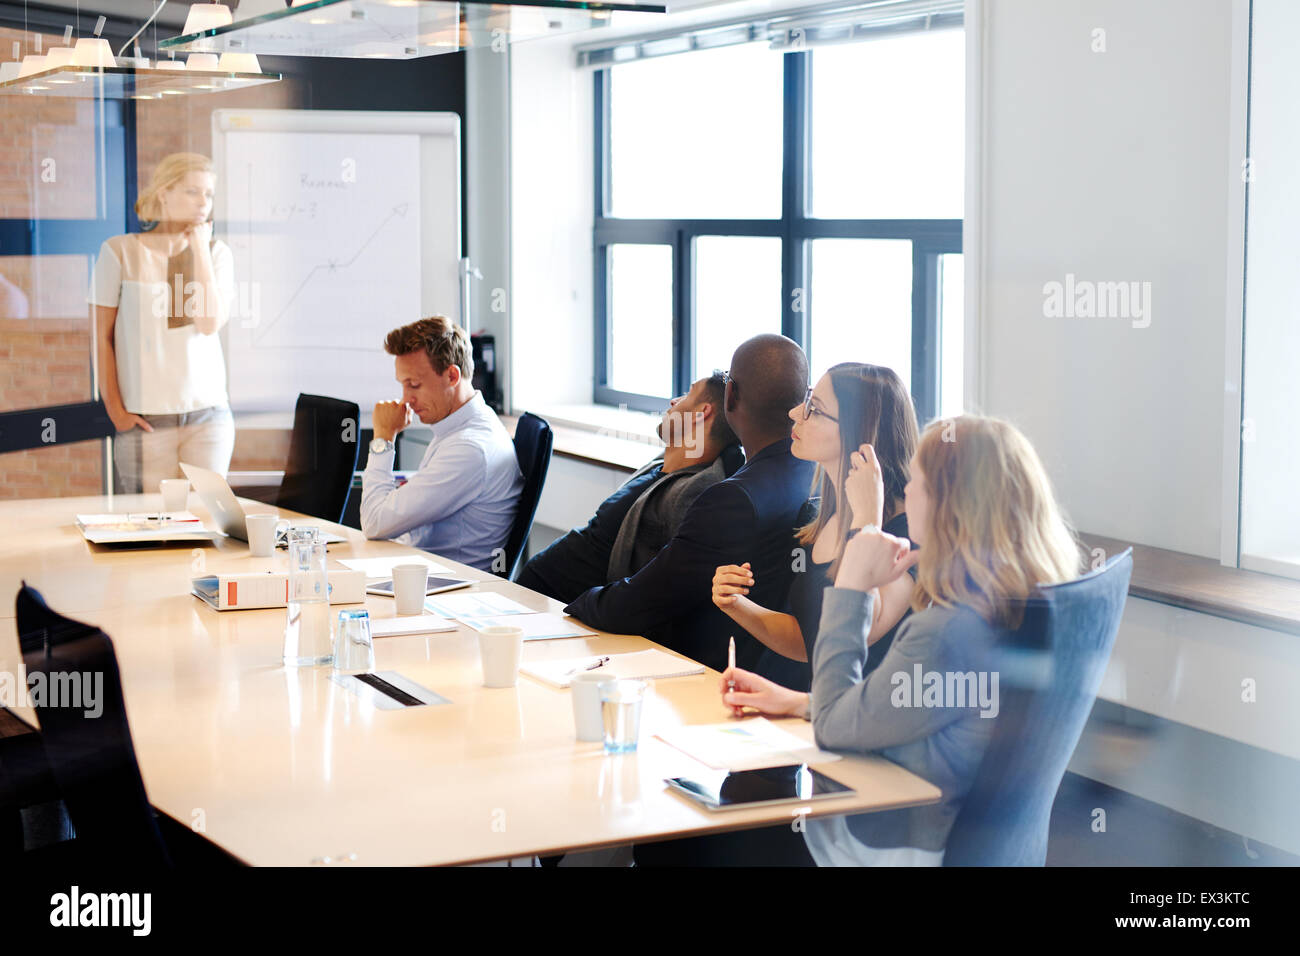 White female executive standing at head of conference room table leading a meeting with colleagues - Stock Image